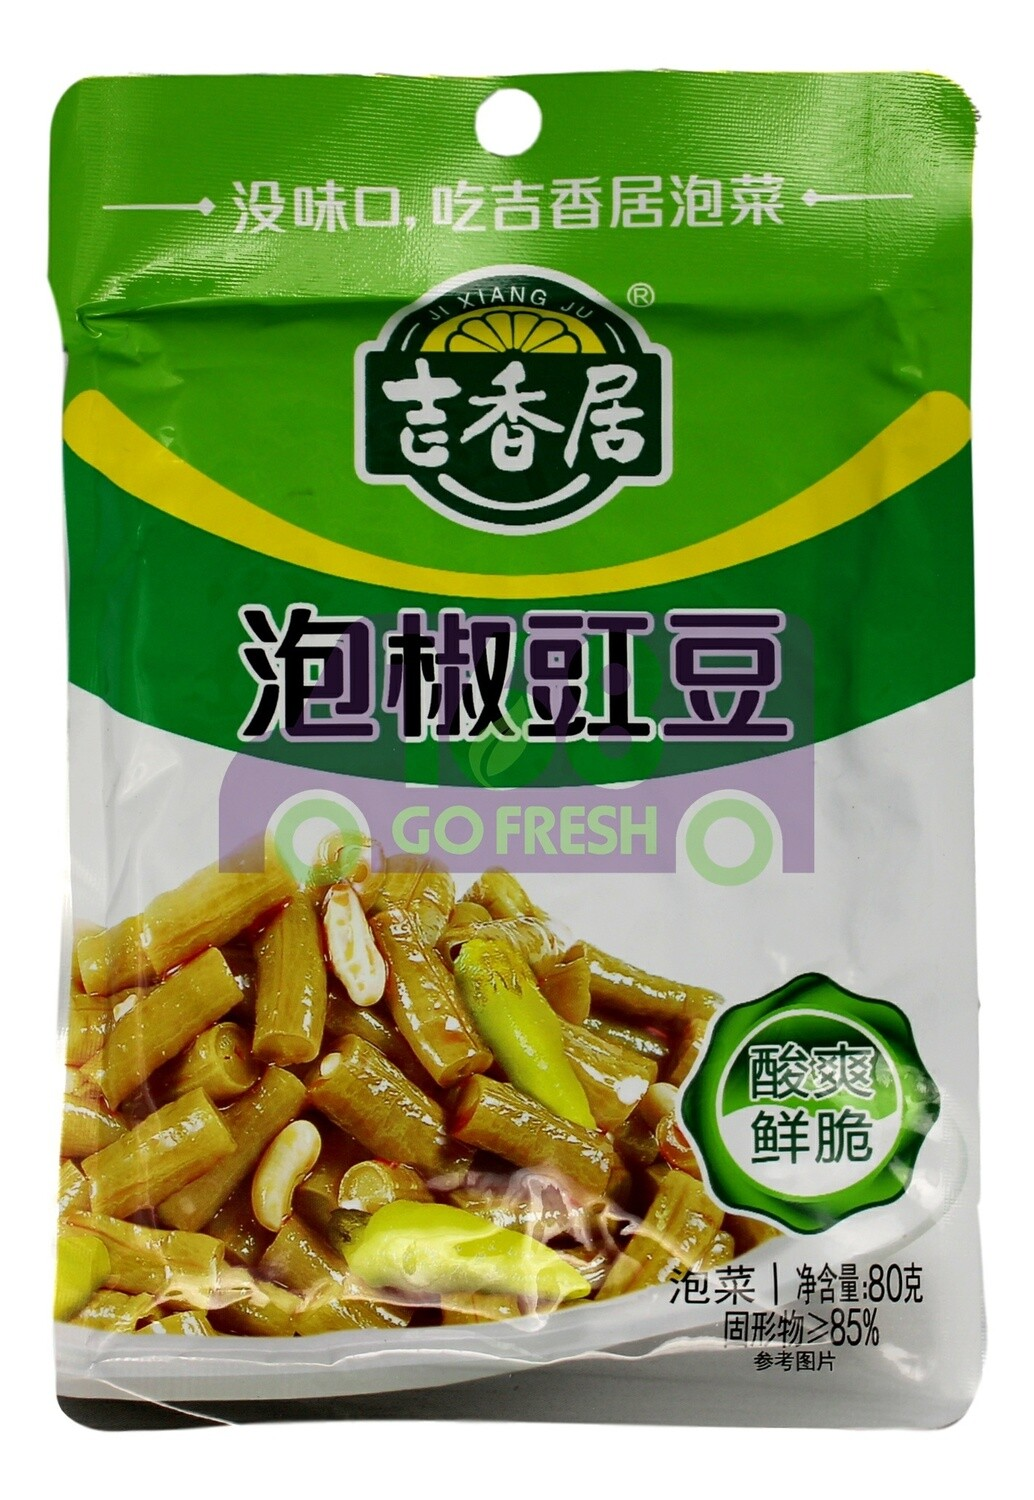 JXJ PICKLED COWPEA BEANS WITH CHILI 吉香居 泡椒豇豆(80G)